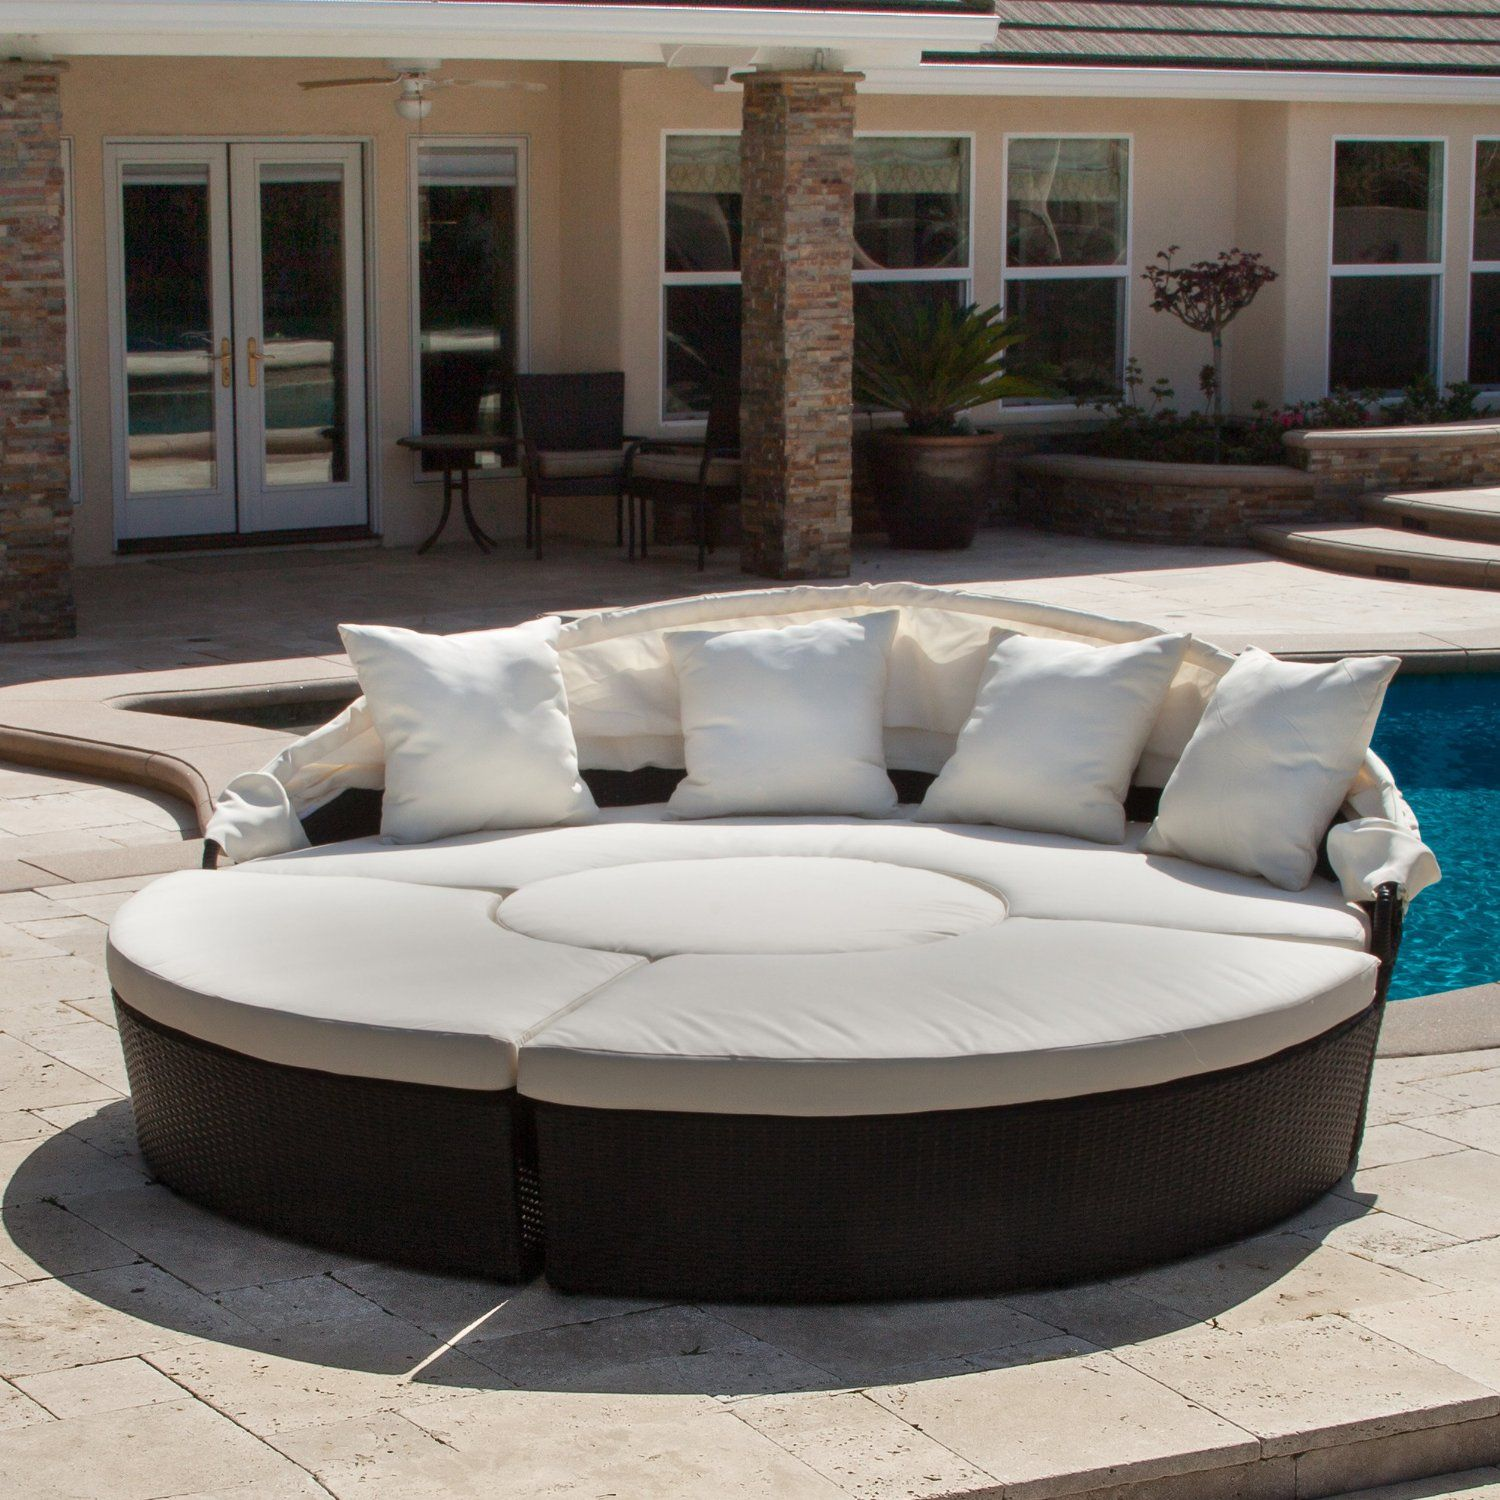 Amazon.com : Bellagio 4-piece Outdoor Daybed Sectional Set : Outdoor ...